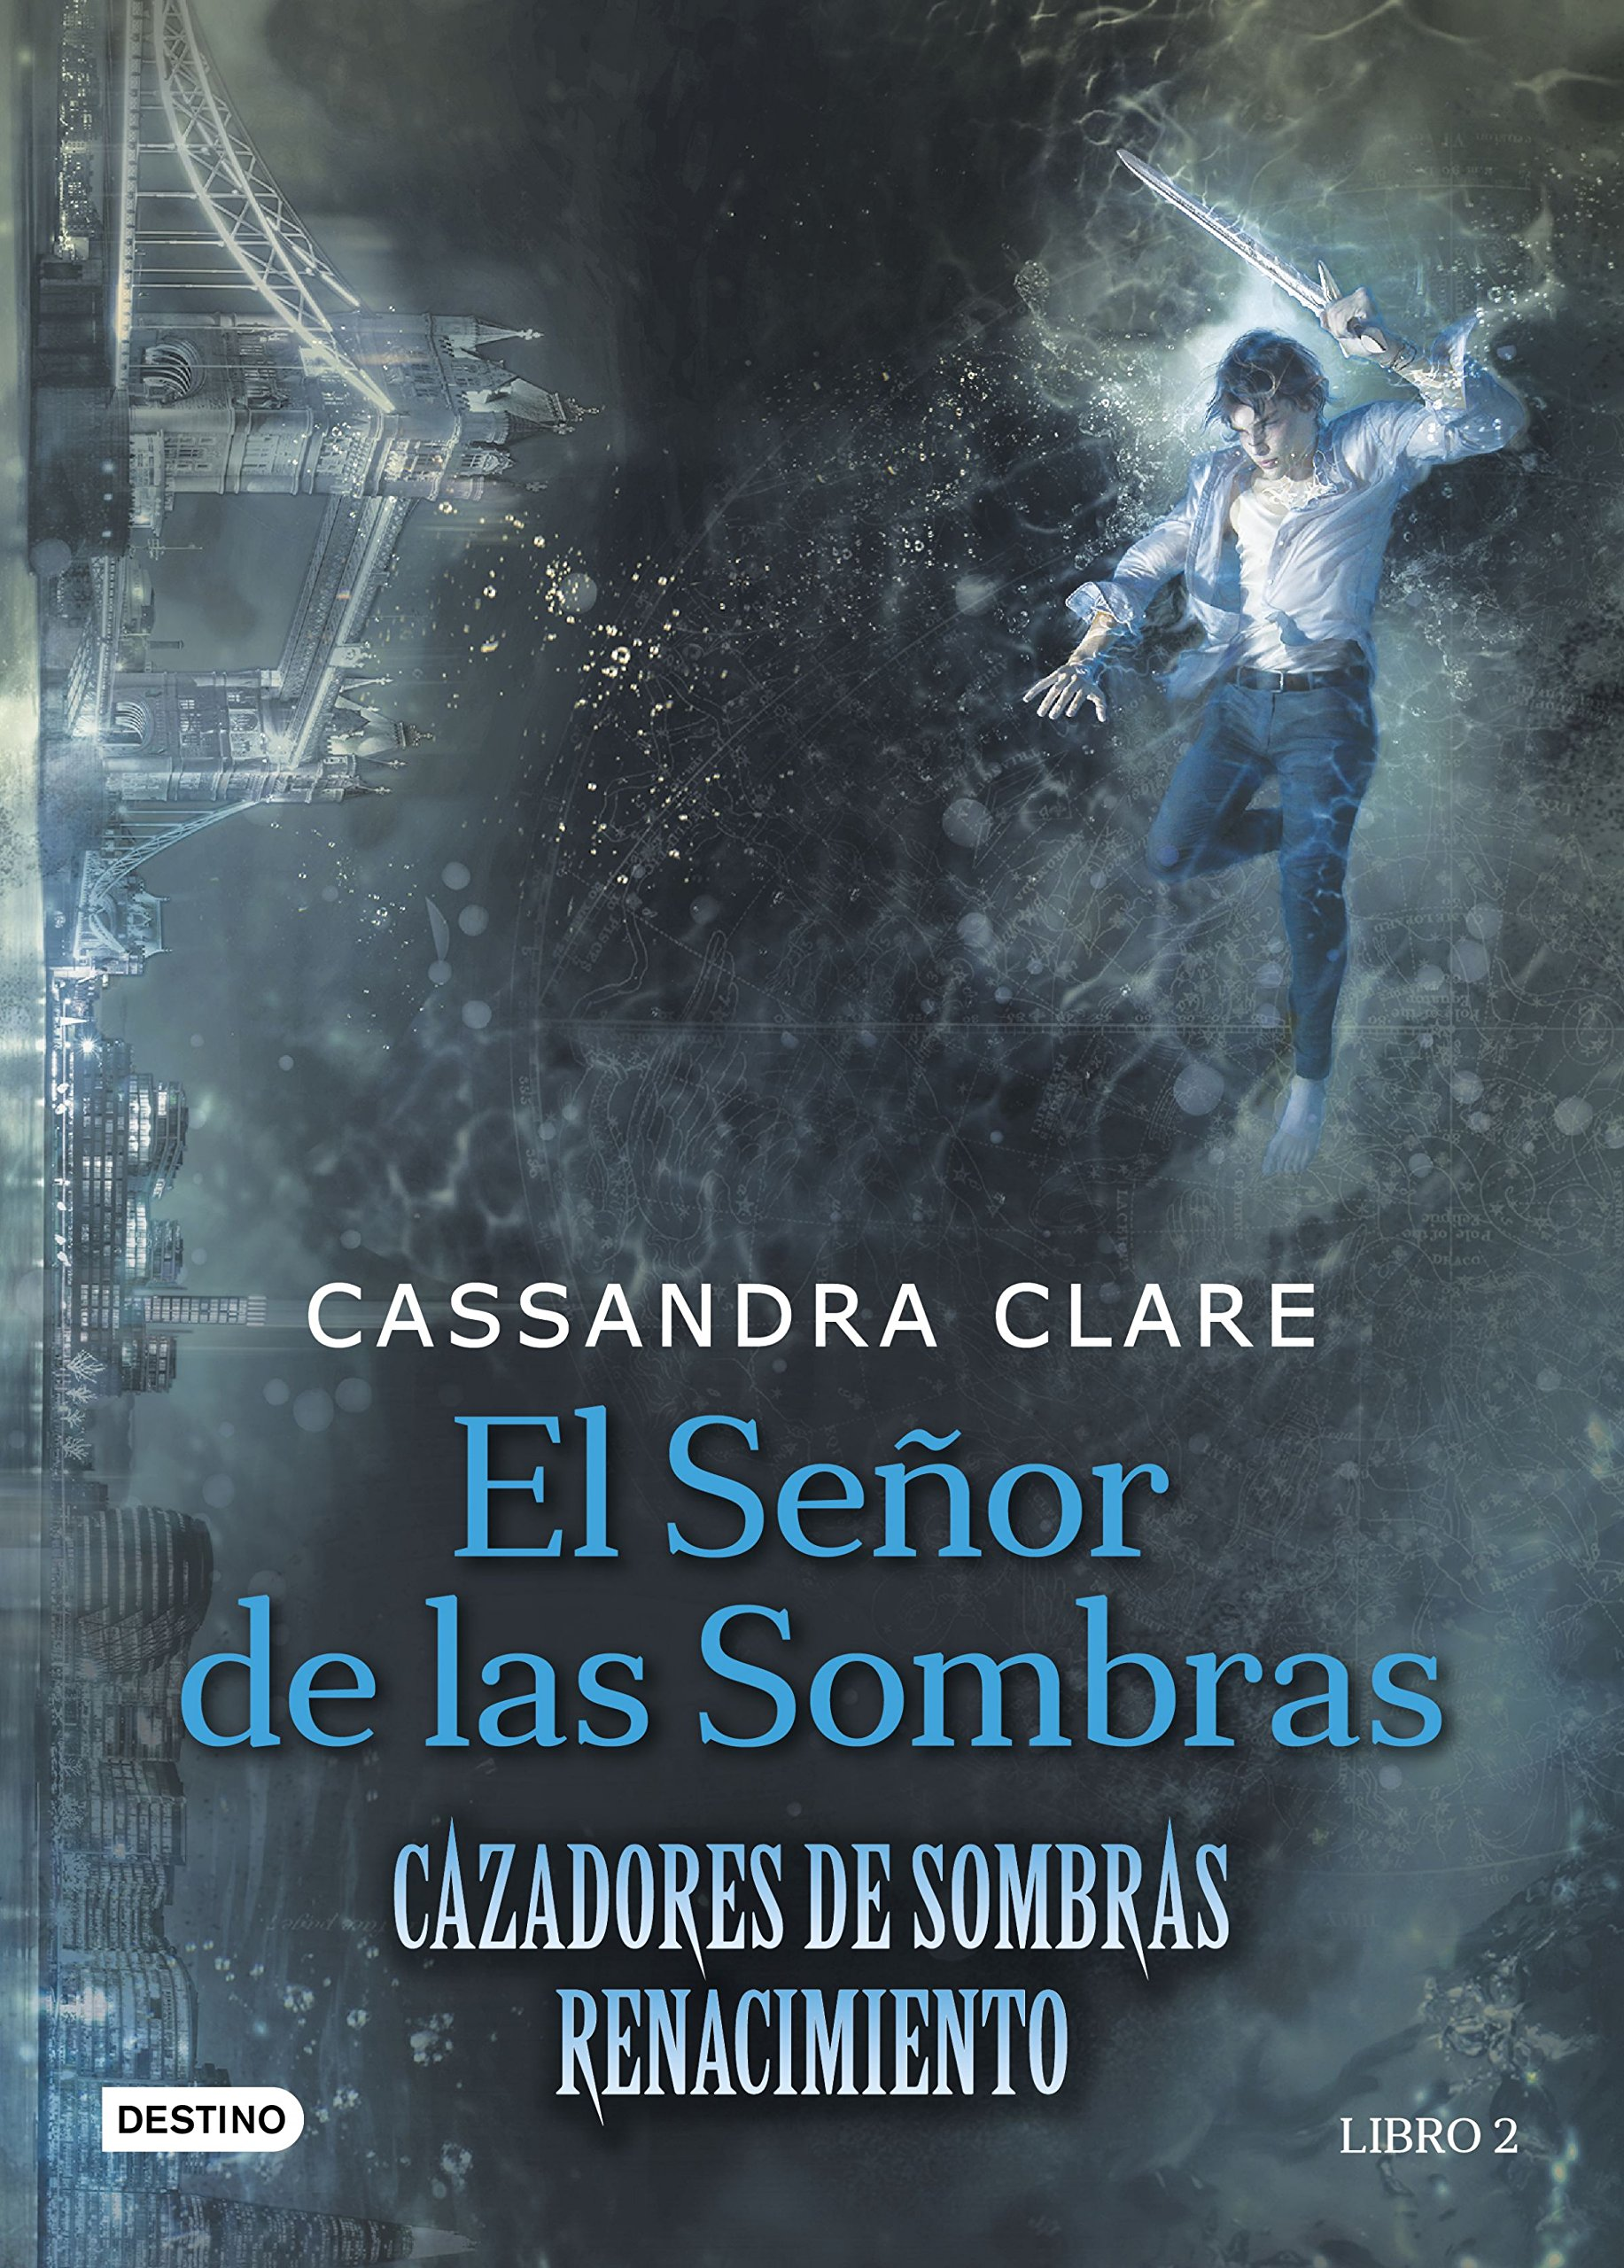 El Se�or de las Sombras: Cassandra Clare: 9788408176282: Amazon.com: Books